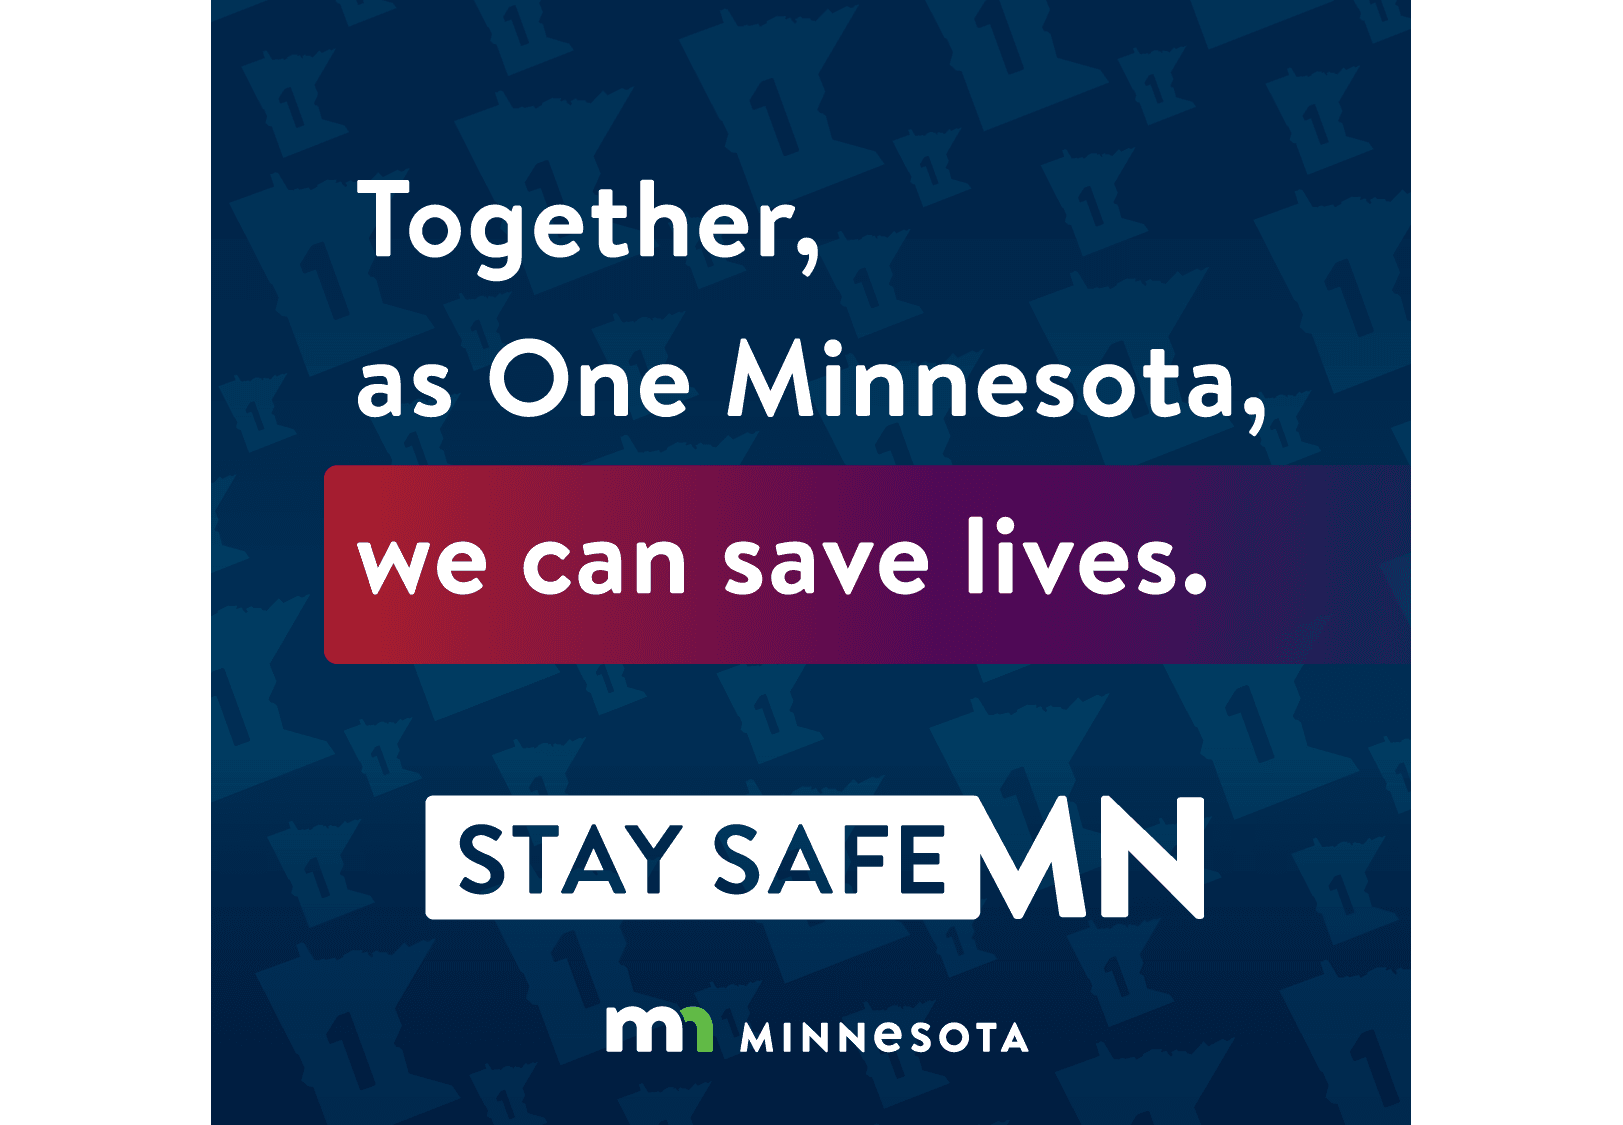 Stay Safe MN Picture